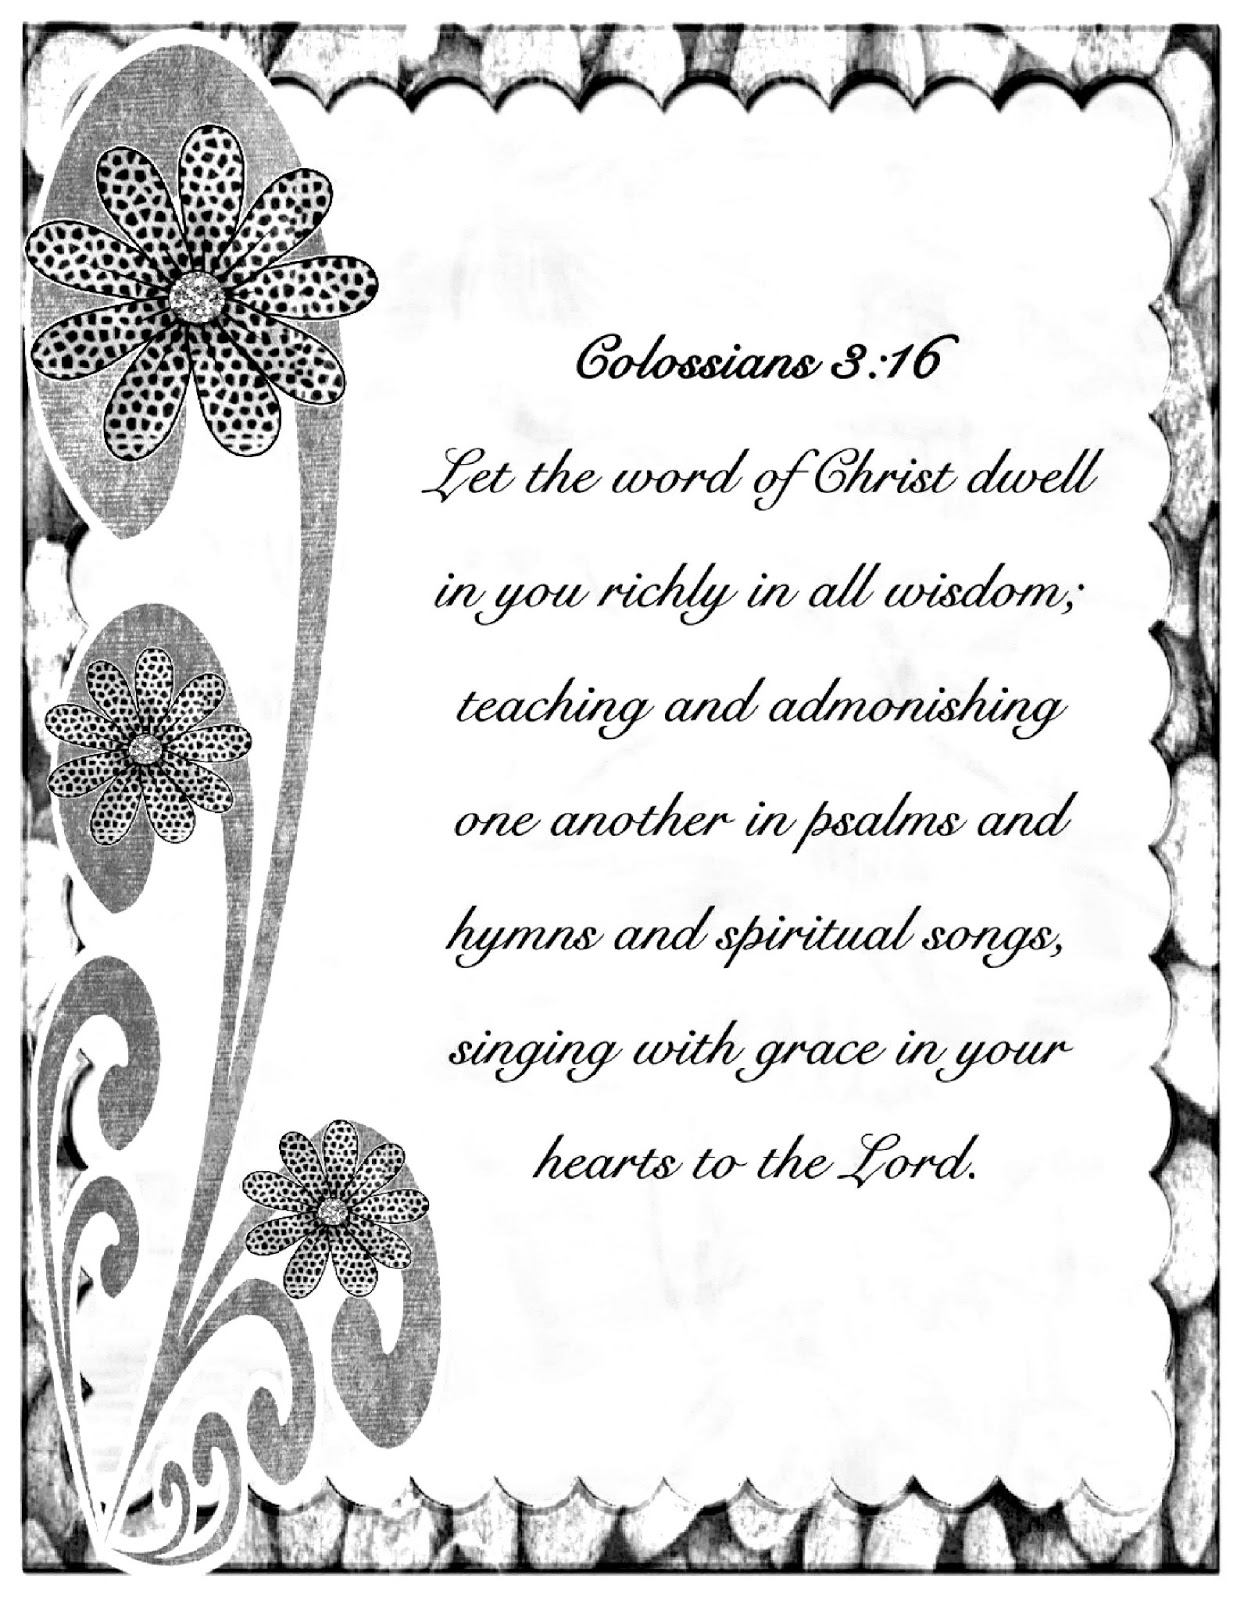 Christian Images In My Treasure Box: Colossians 3:16